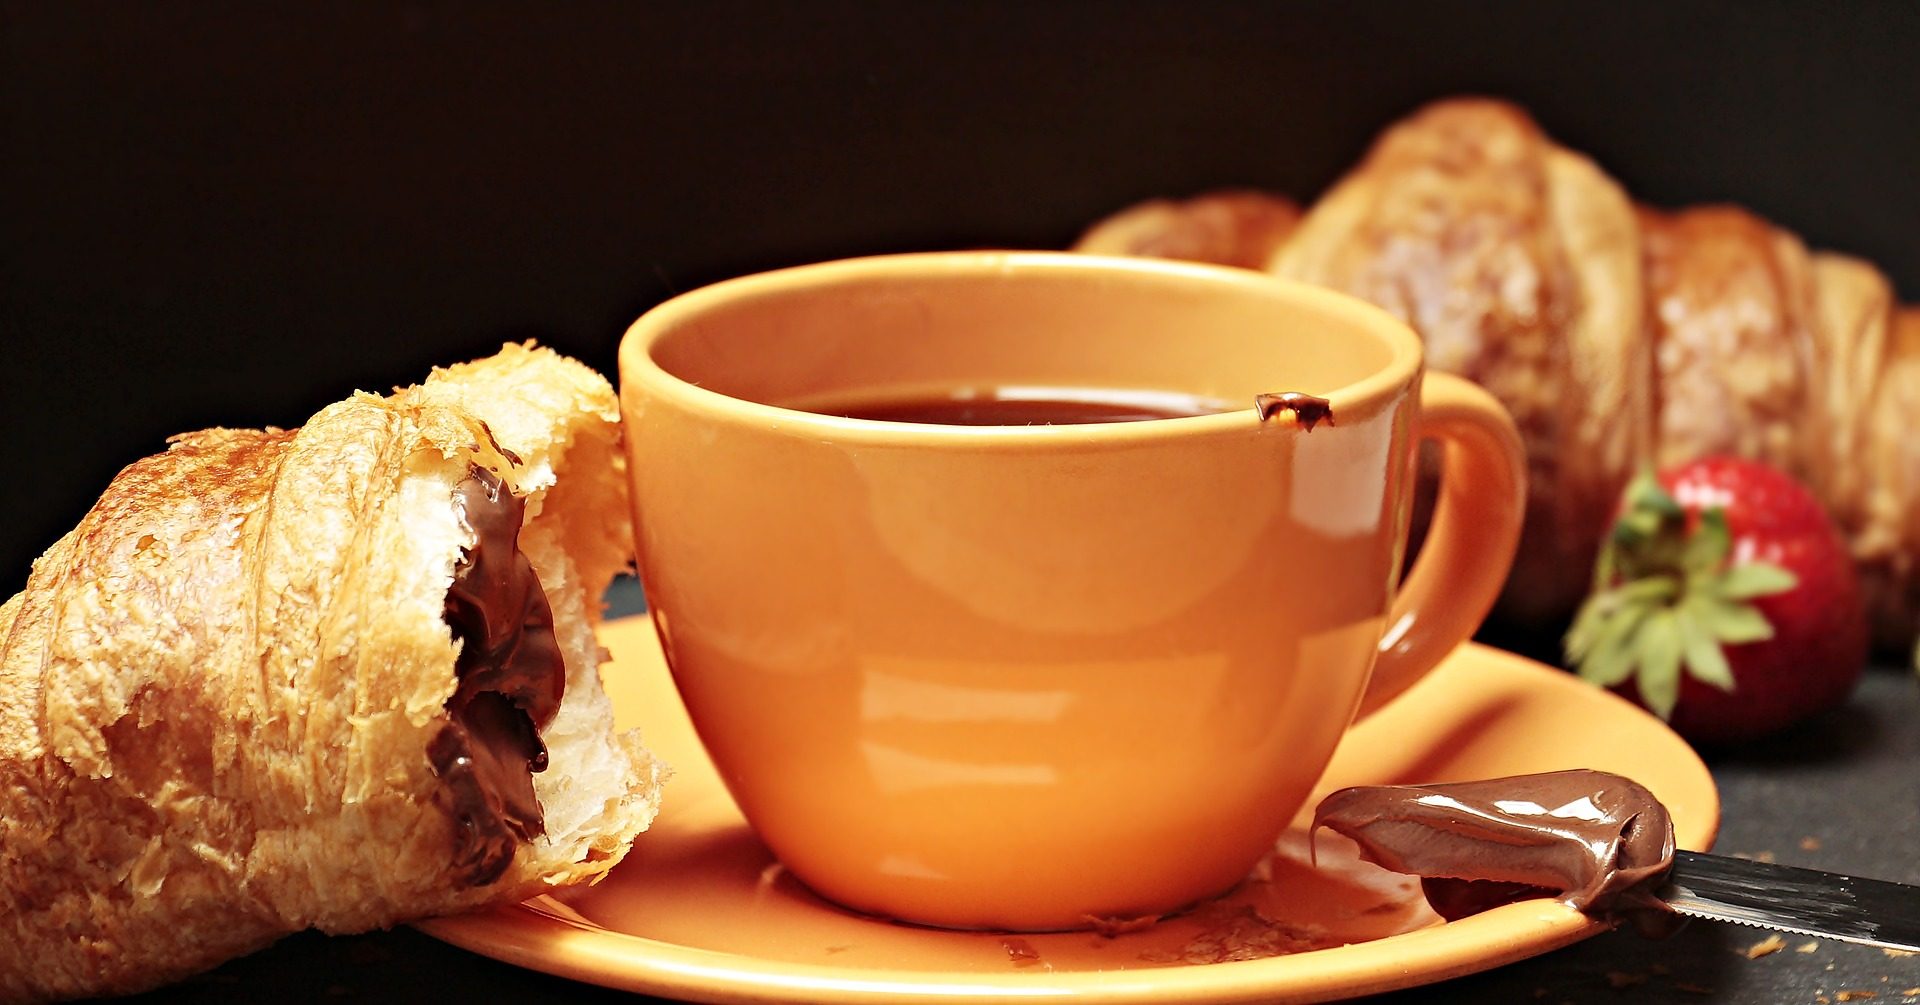 Chocolate croissant on plate with mug of coffee